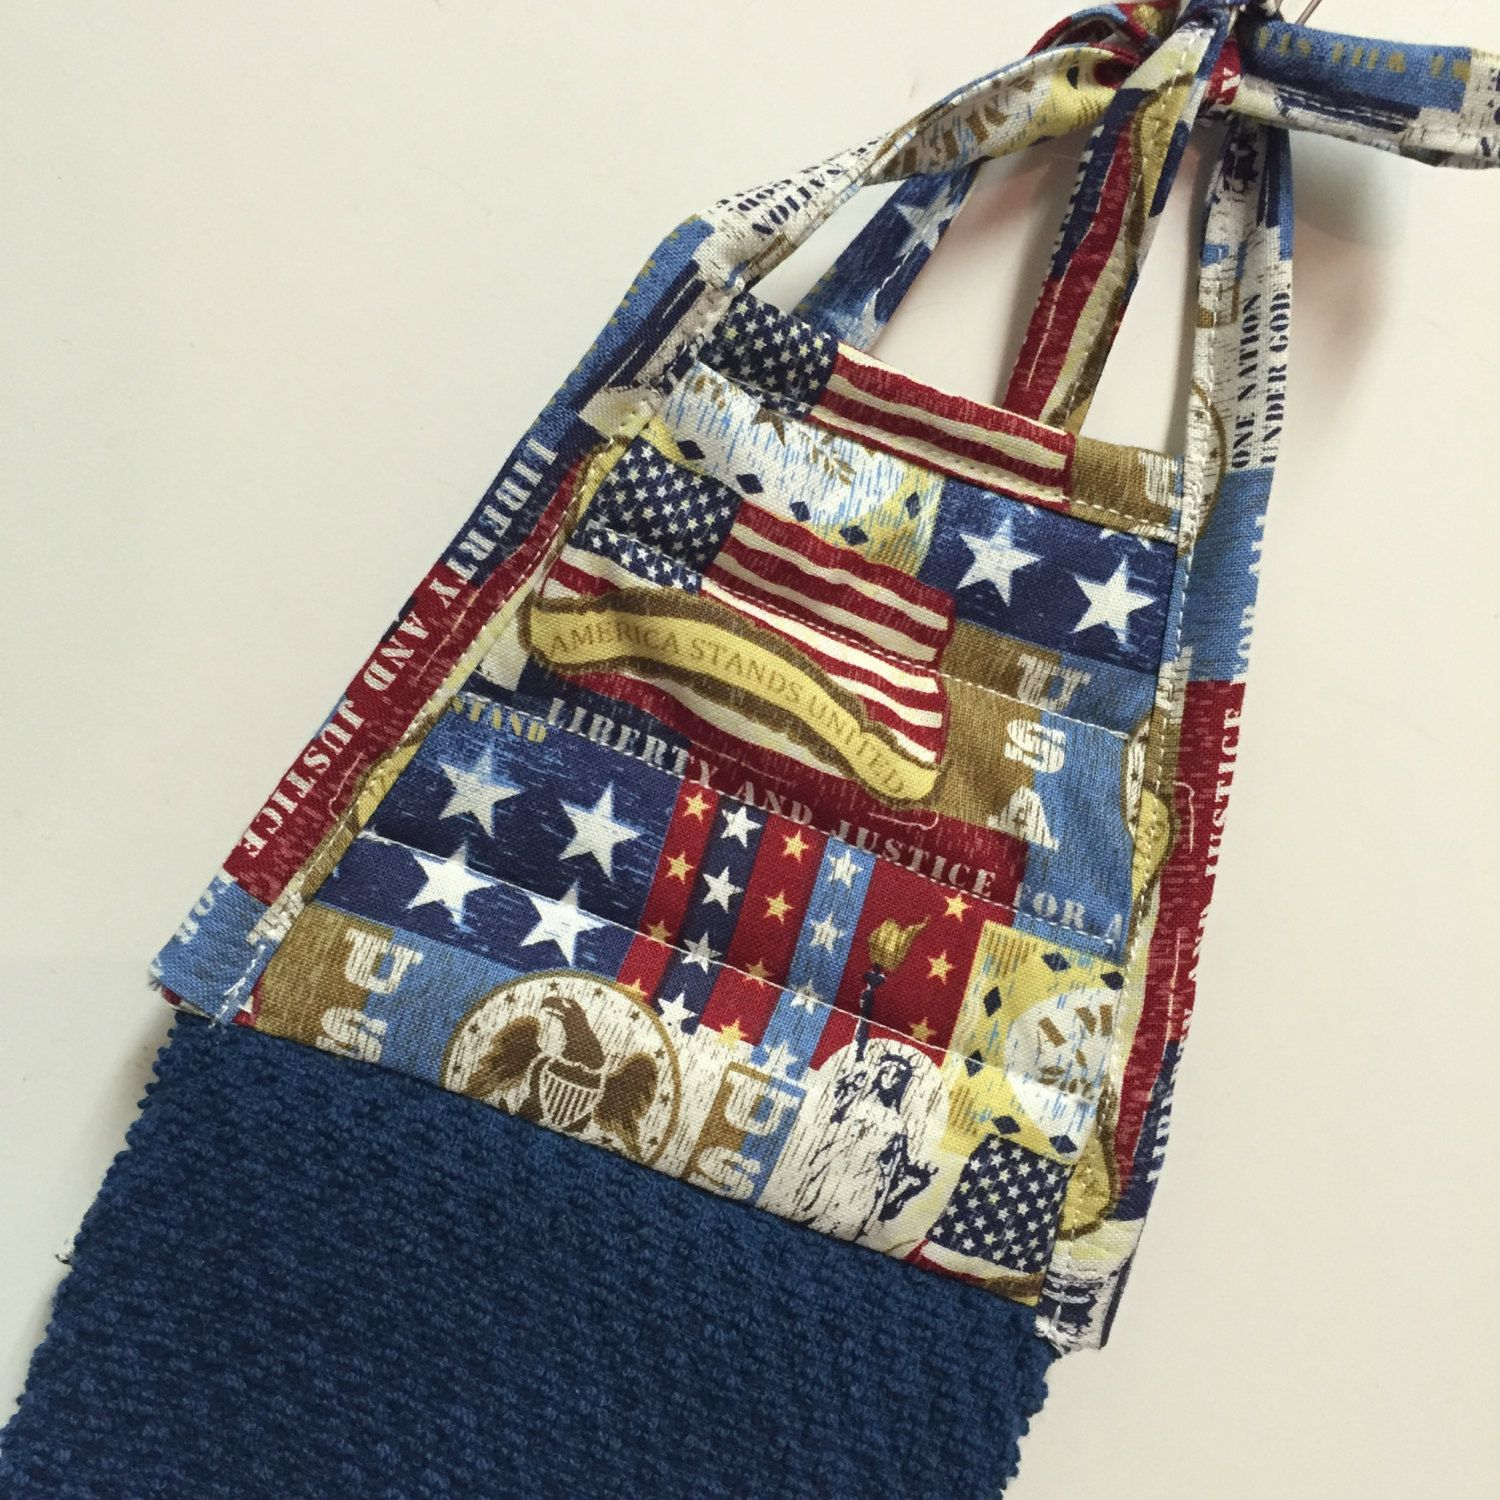 Charming Patriotic Kitchen Towel,Americana Towel,4th Of July,Hanging Towel,Red White